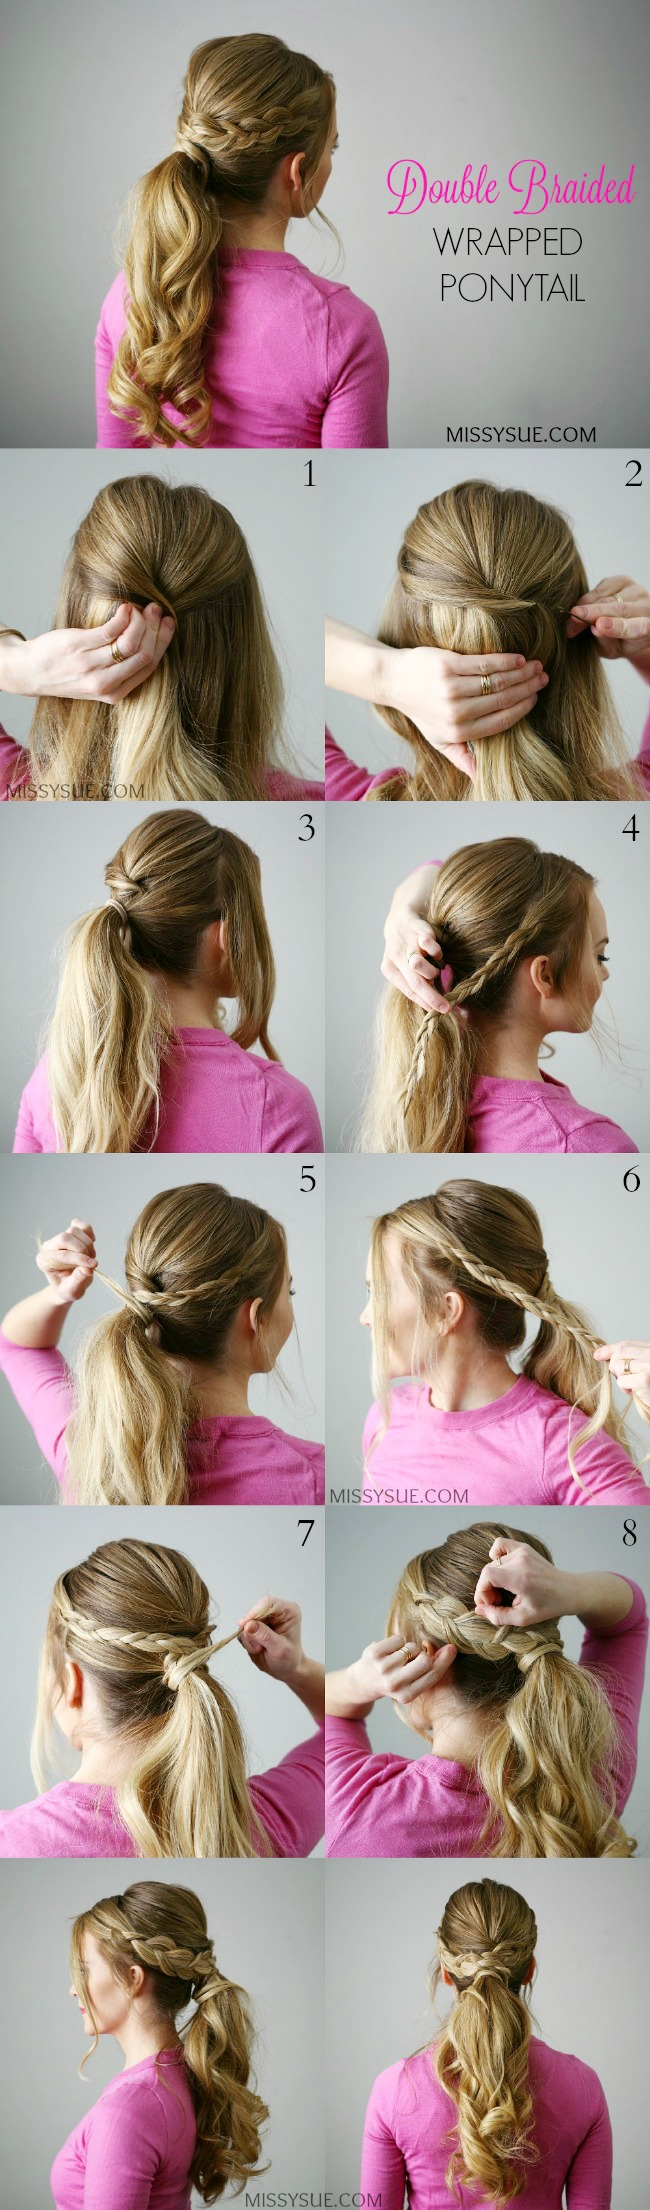 double-braid-wrapped-ponytail-tutorial